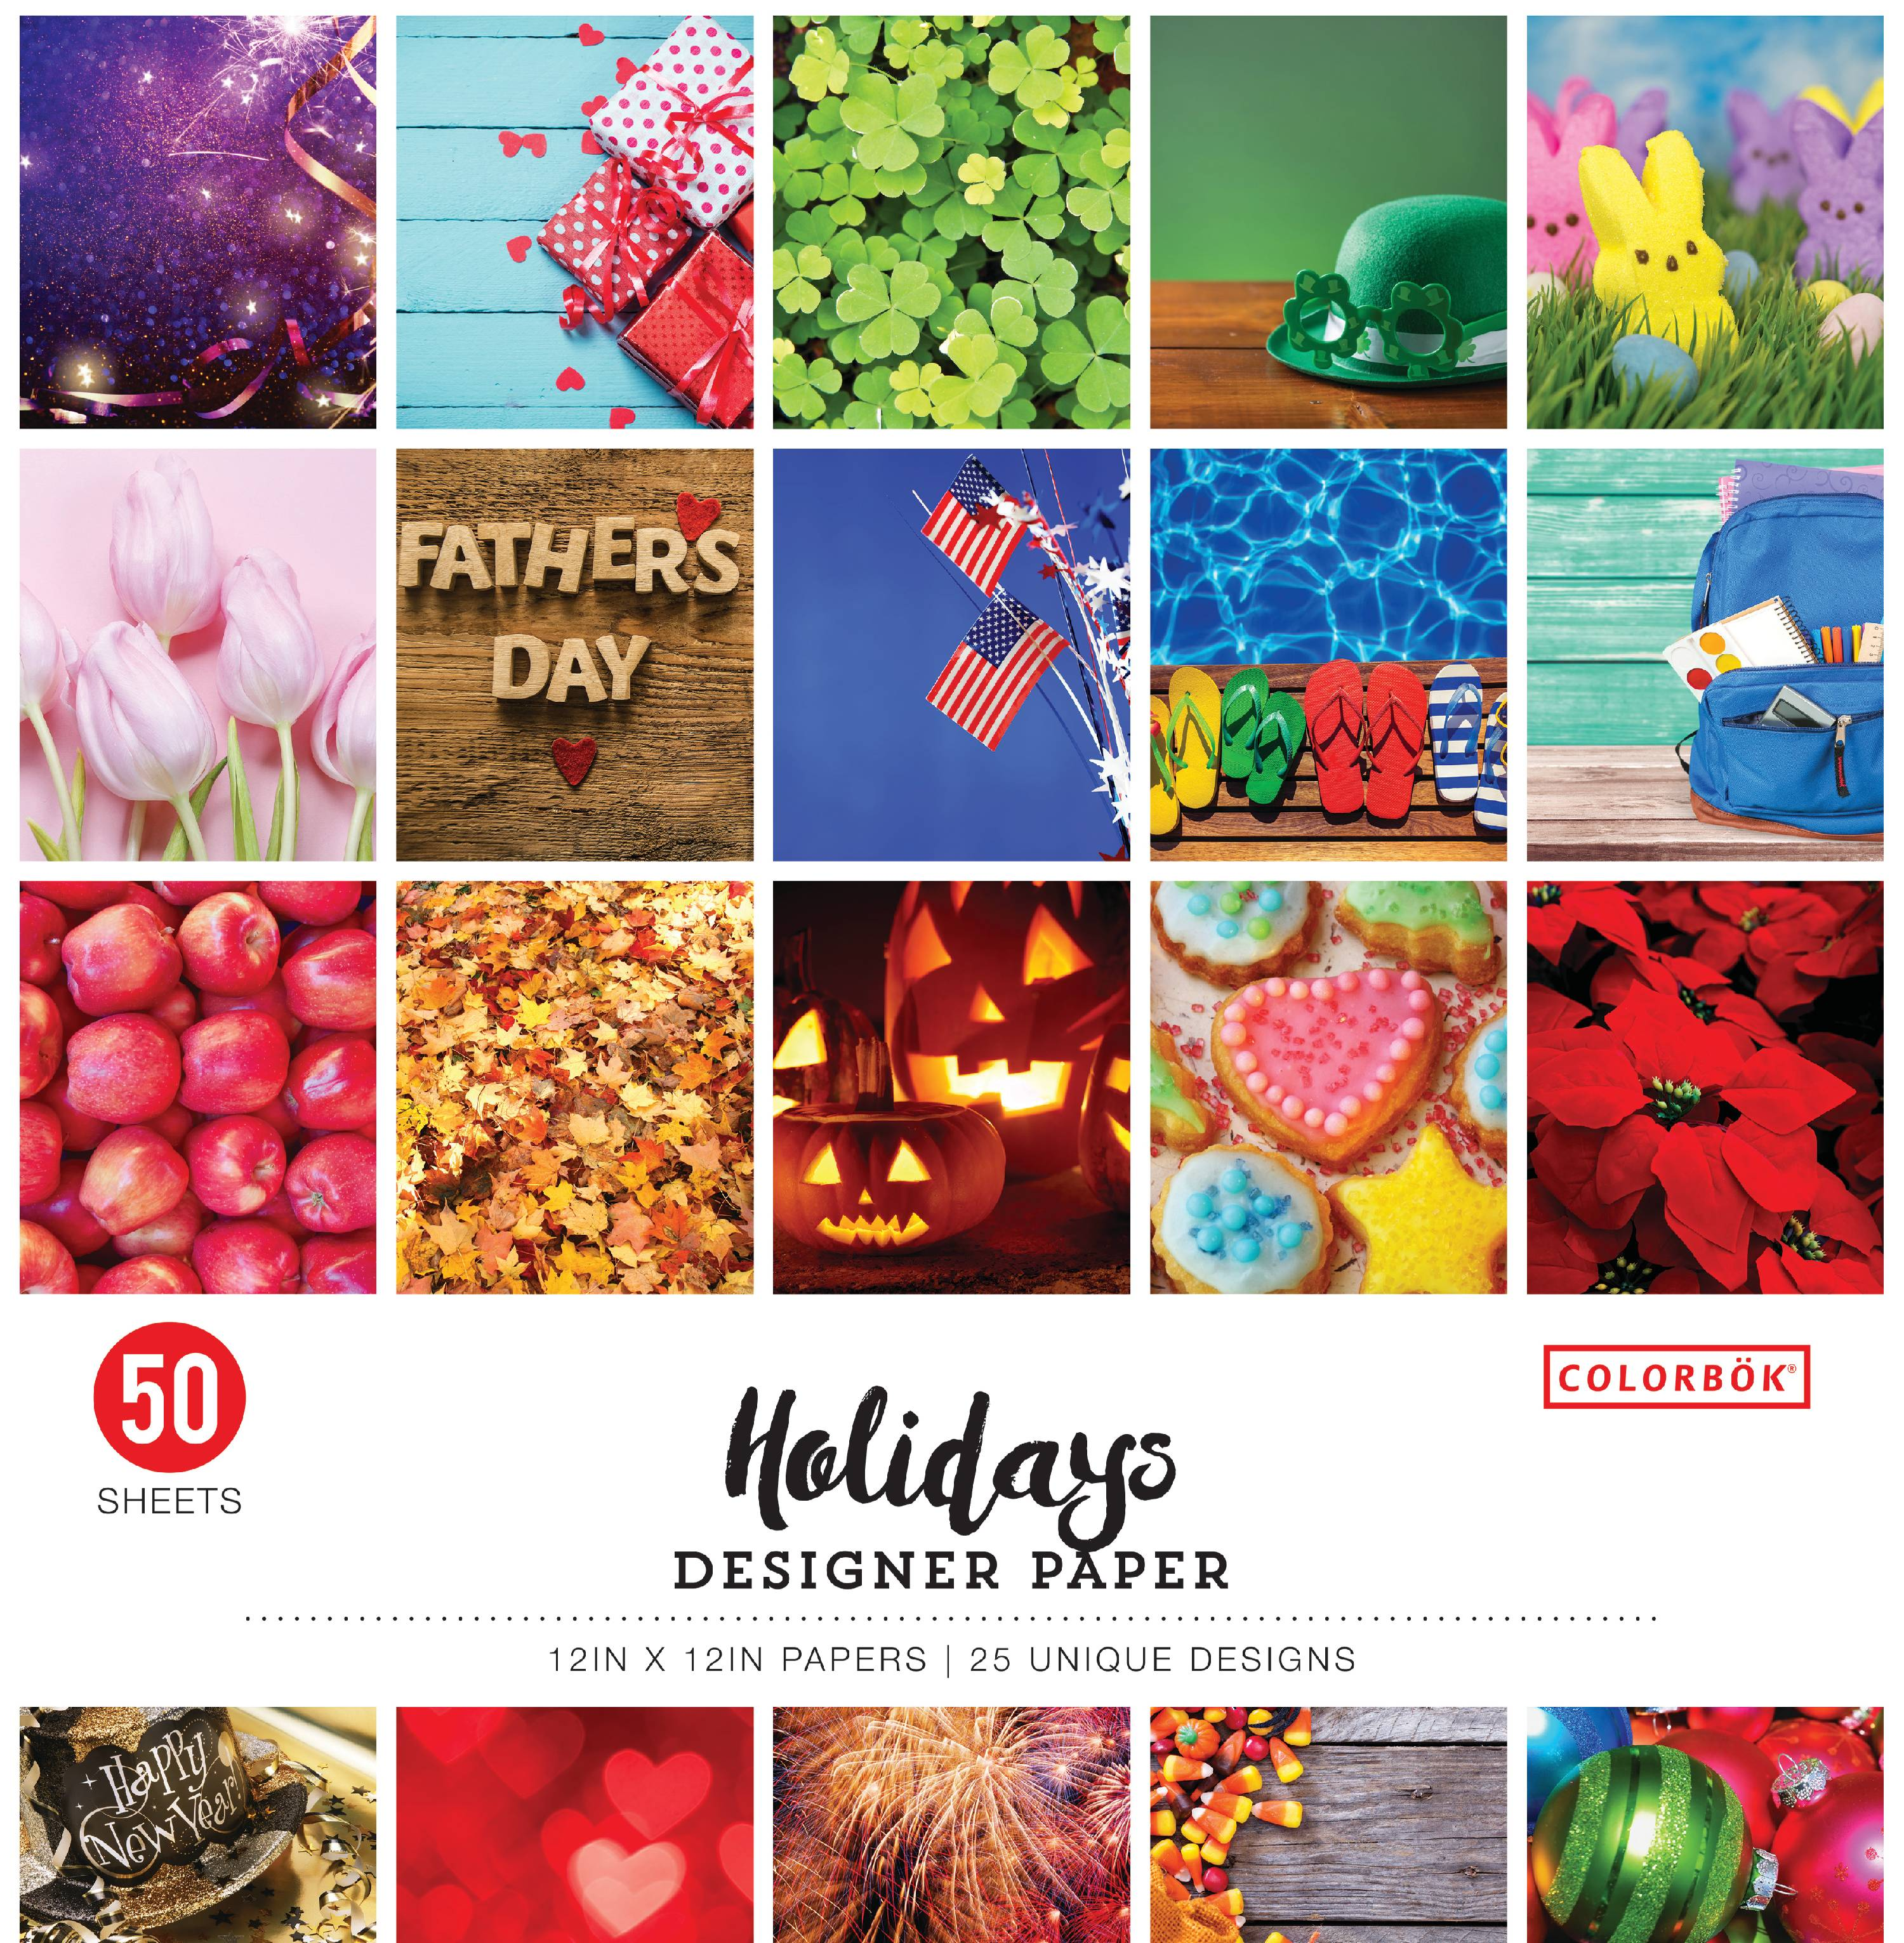 12in Designer Paper Holidays